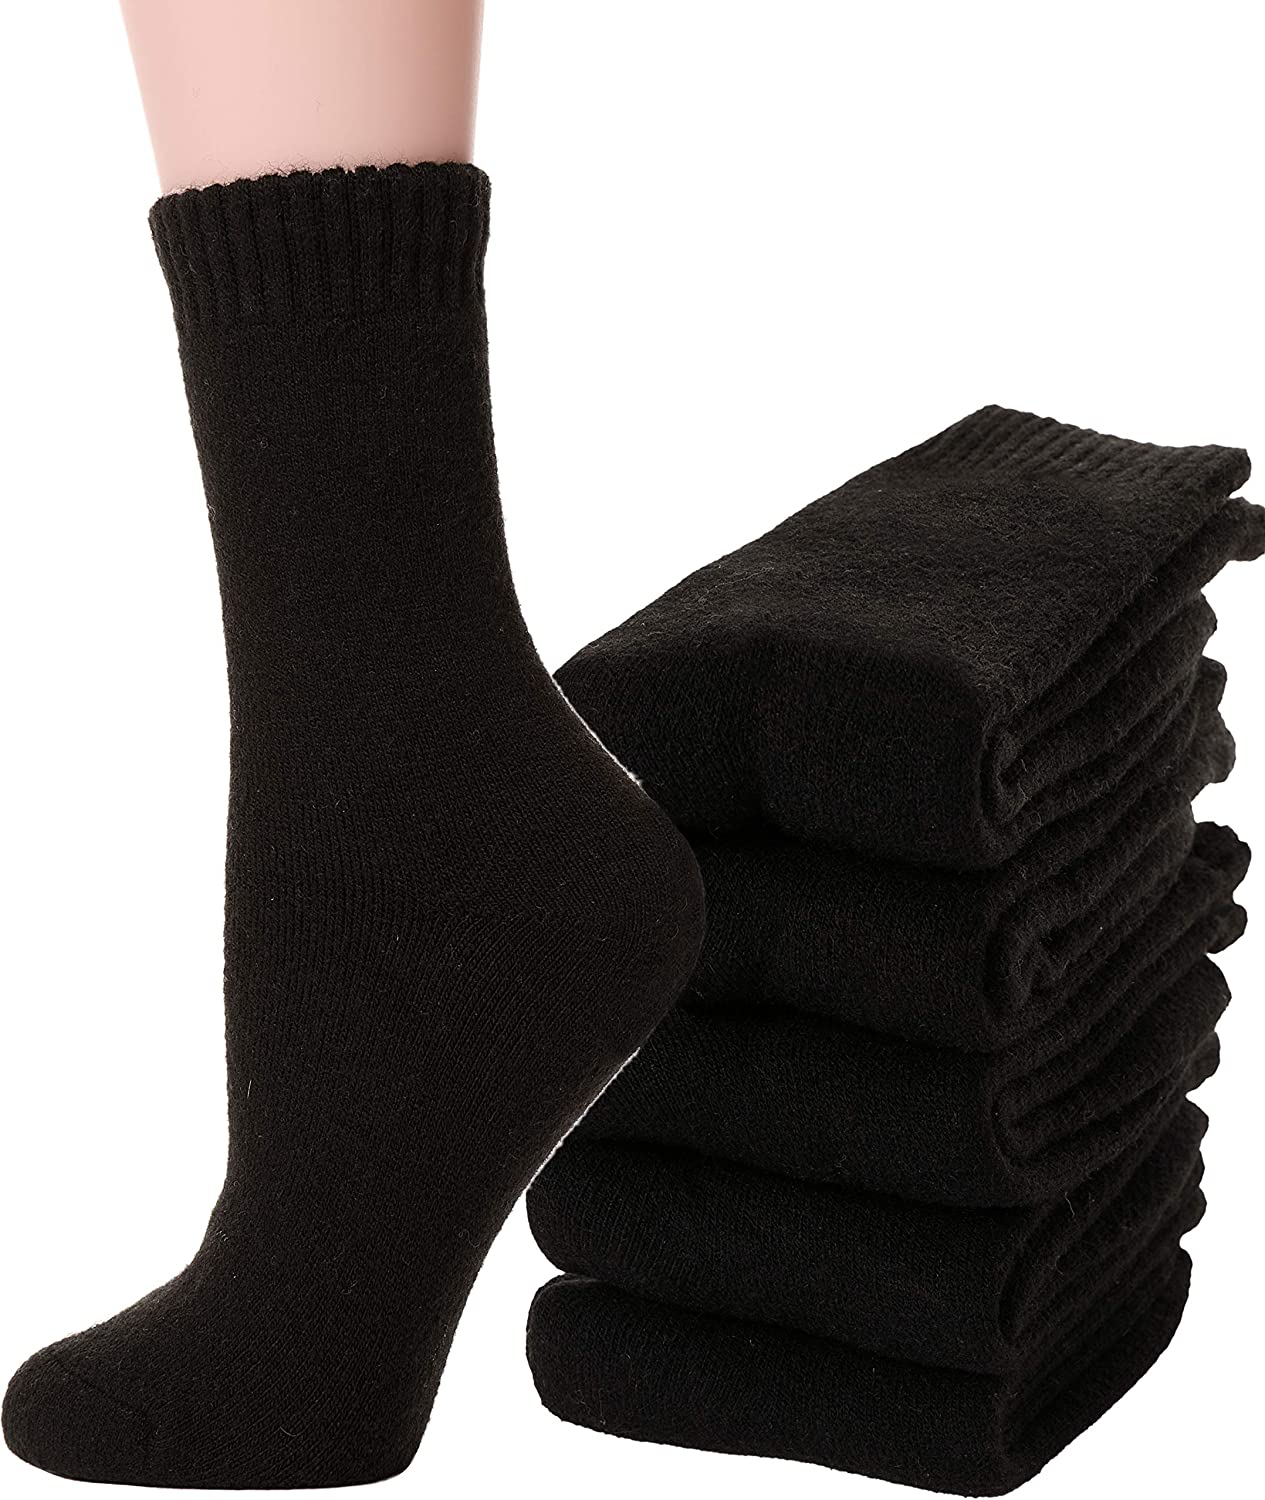 5 Pairs Womens Wool Socks Fuzzy Heavy Thermal Thick Warm Cotton Boot Winter Socks